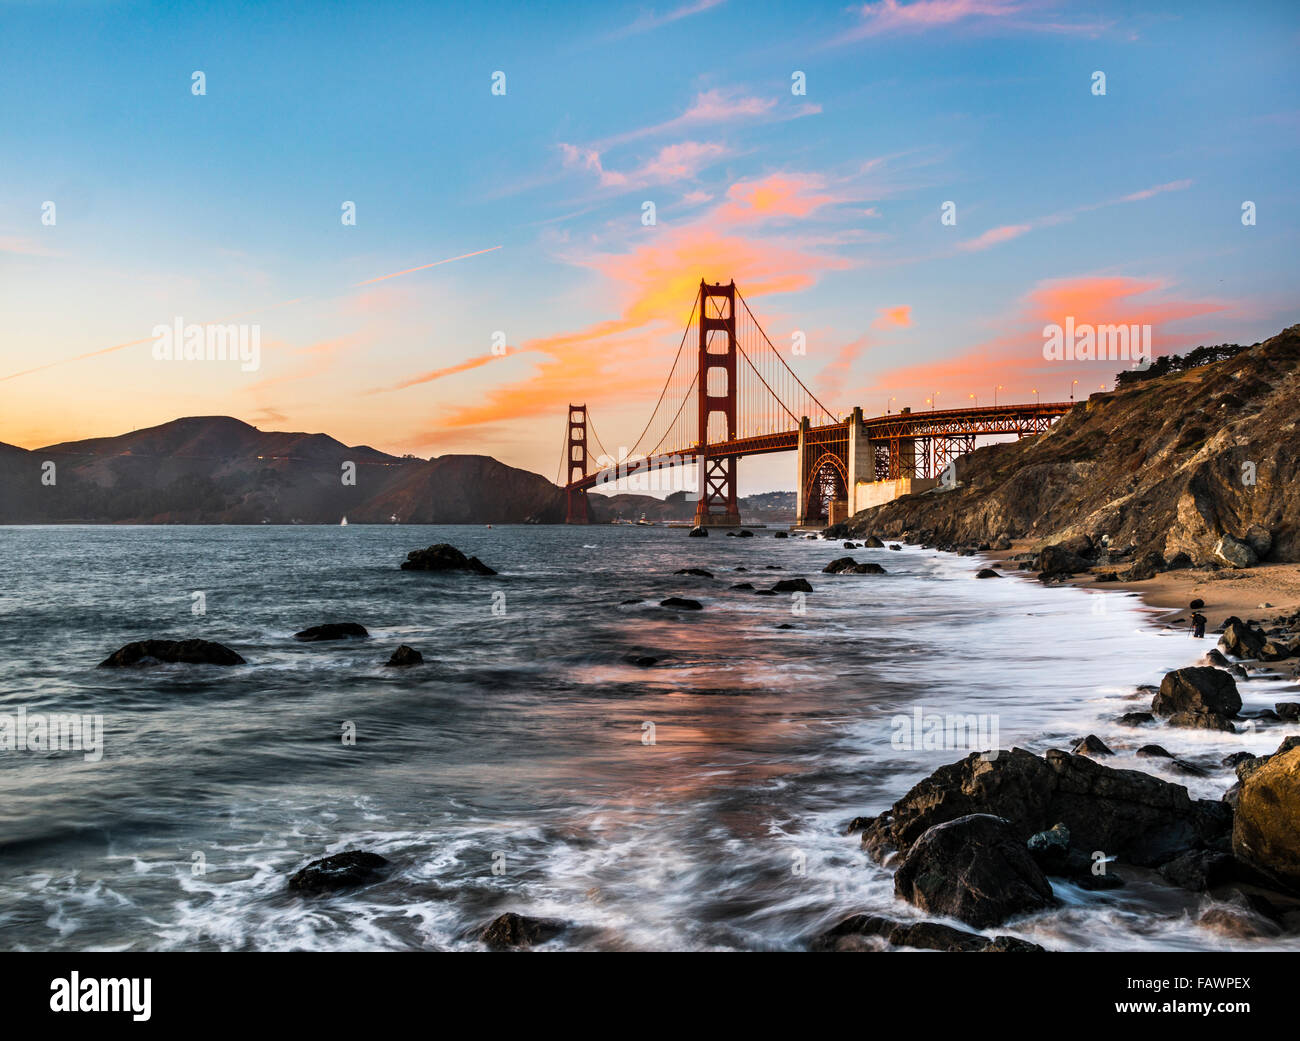 Golden Gate Bridge, Marshall's Beach, tramonto, costa rocciosa, San Francisco, Stati Uniti d'America Immagini Stock